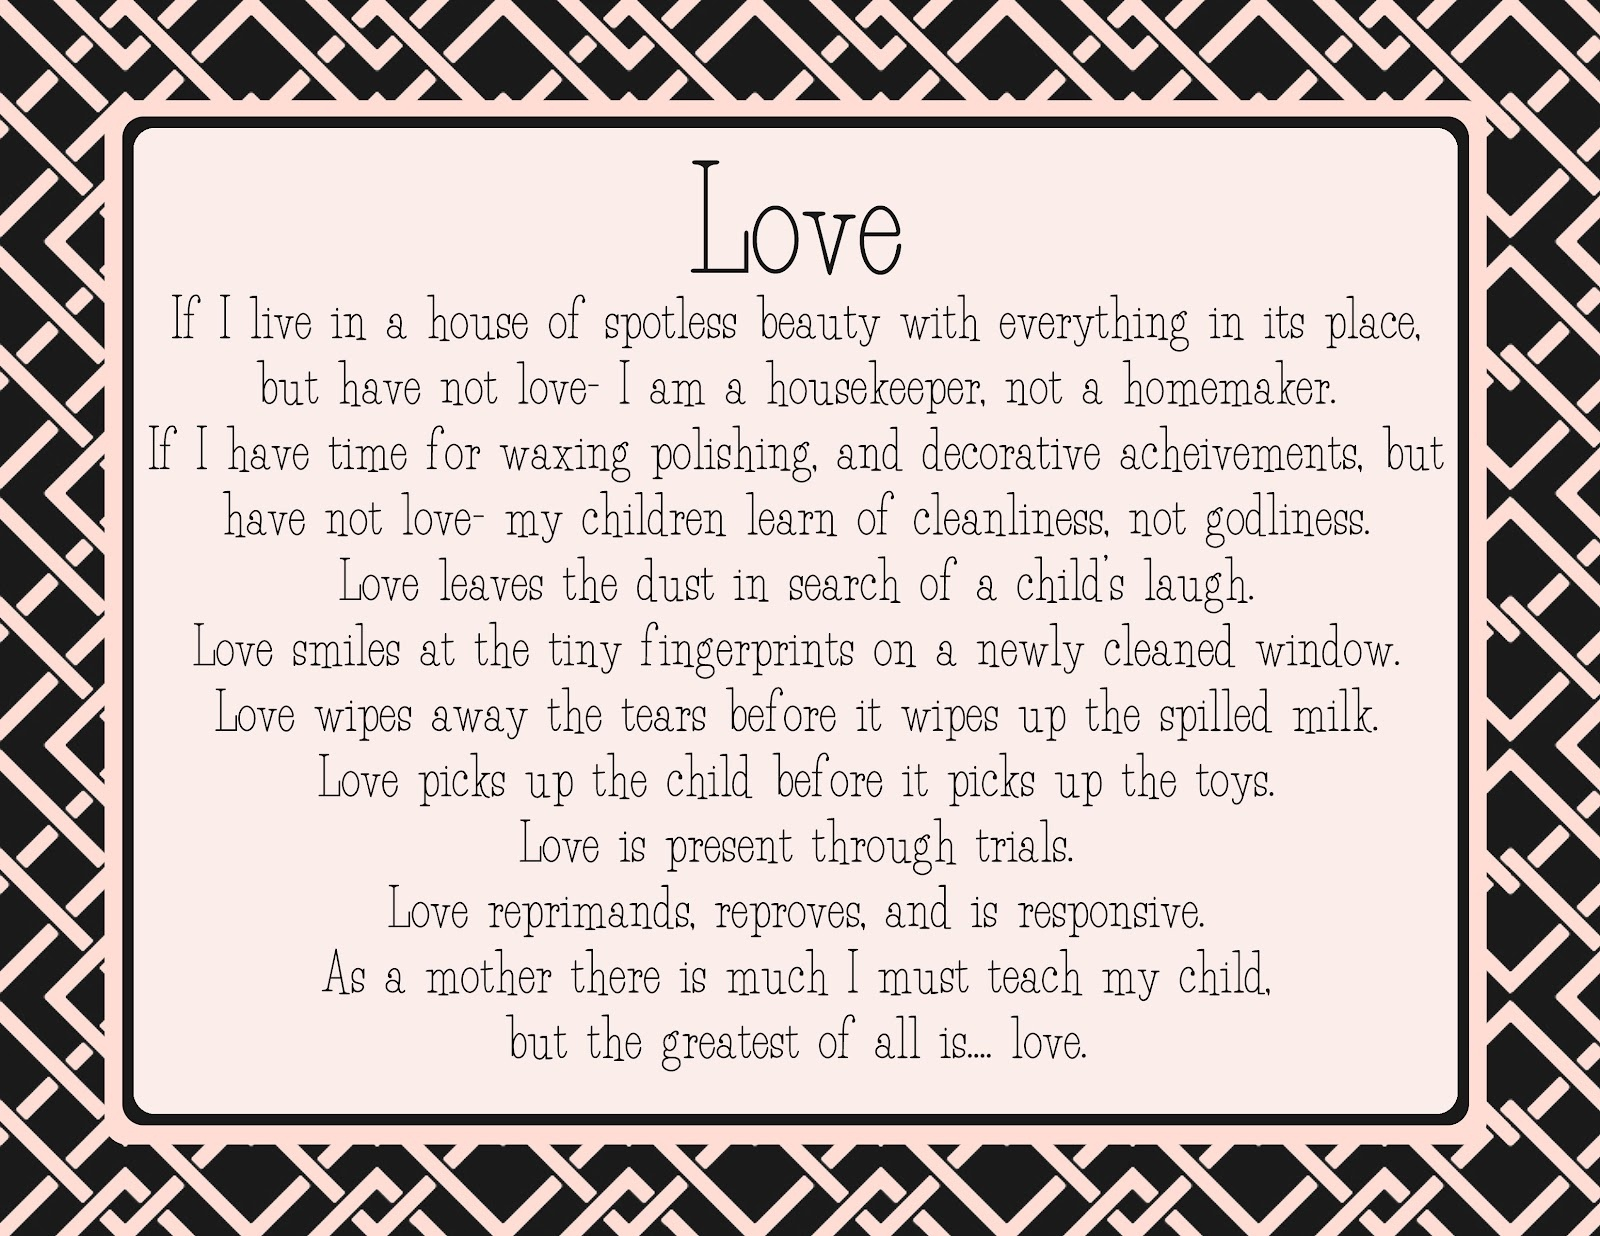 Love Poems For Him For Her For The One You Love For Your Boyfriend - Free Printable Love Poems For Him